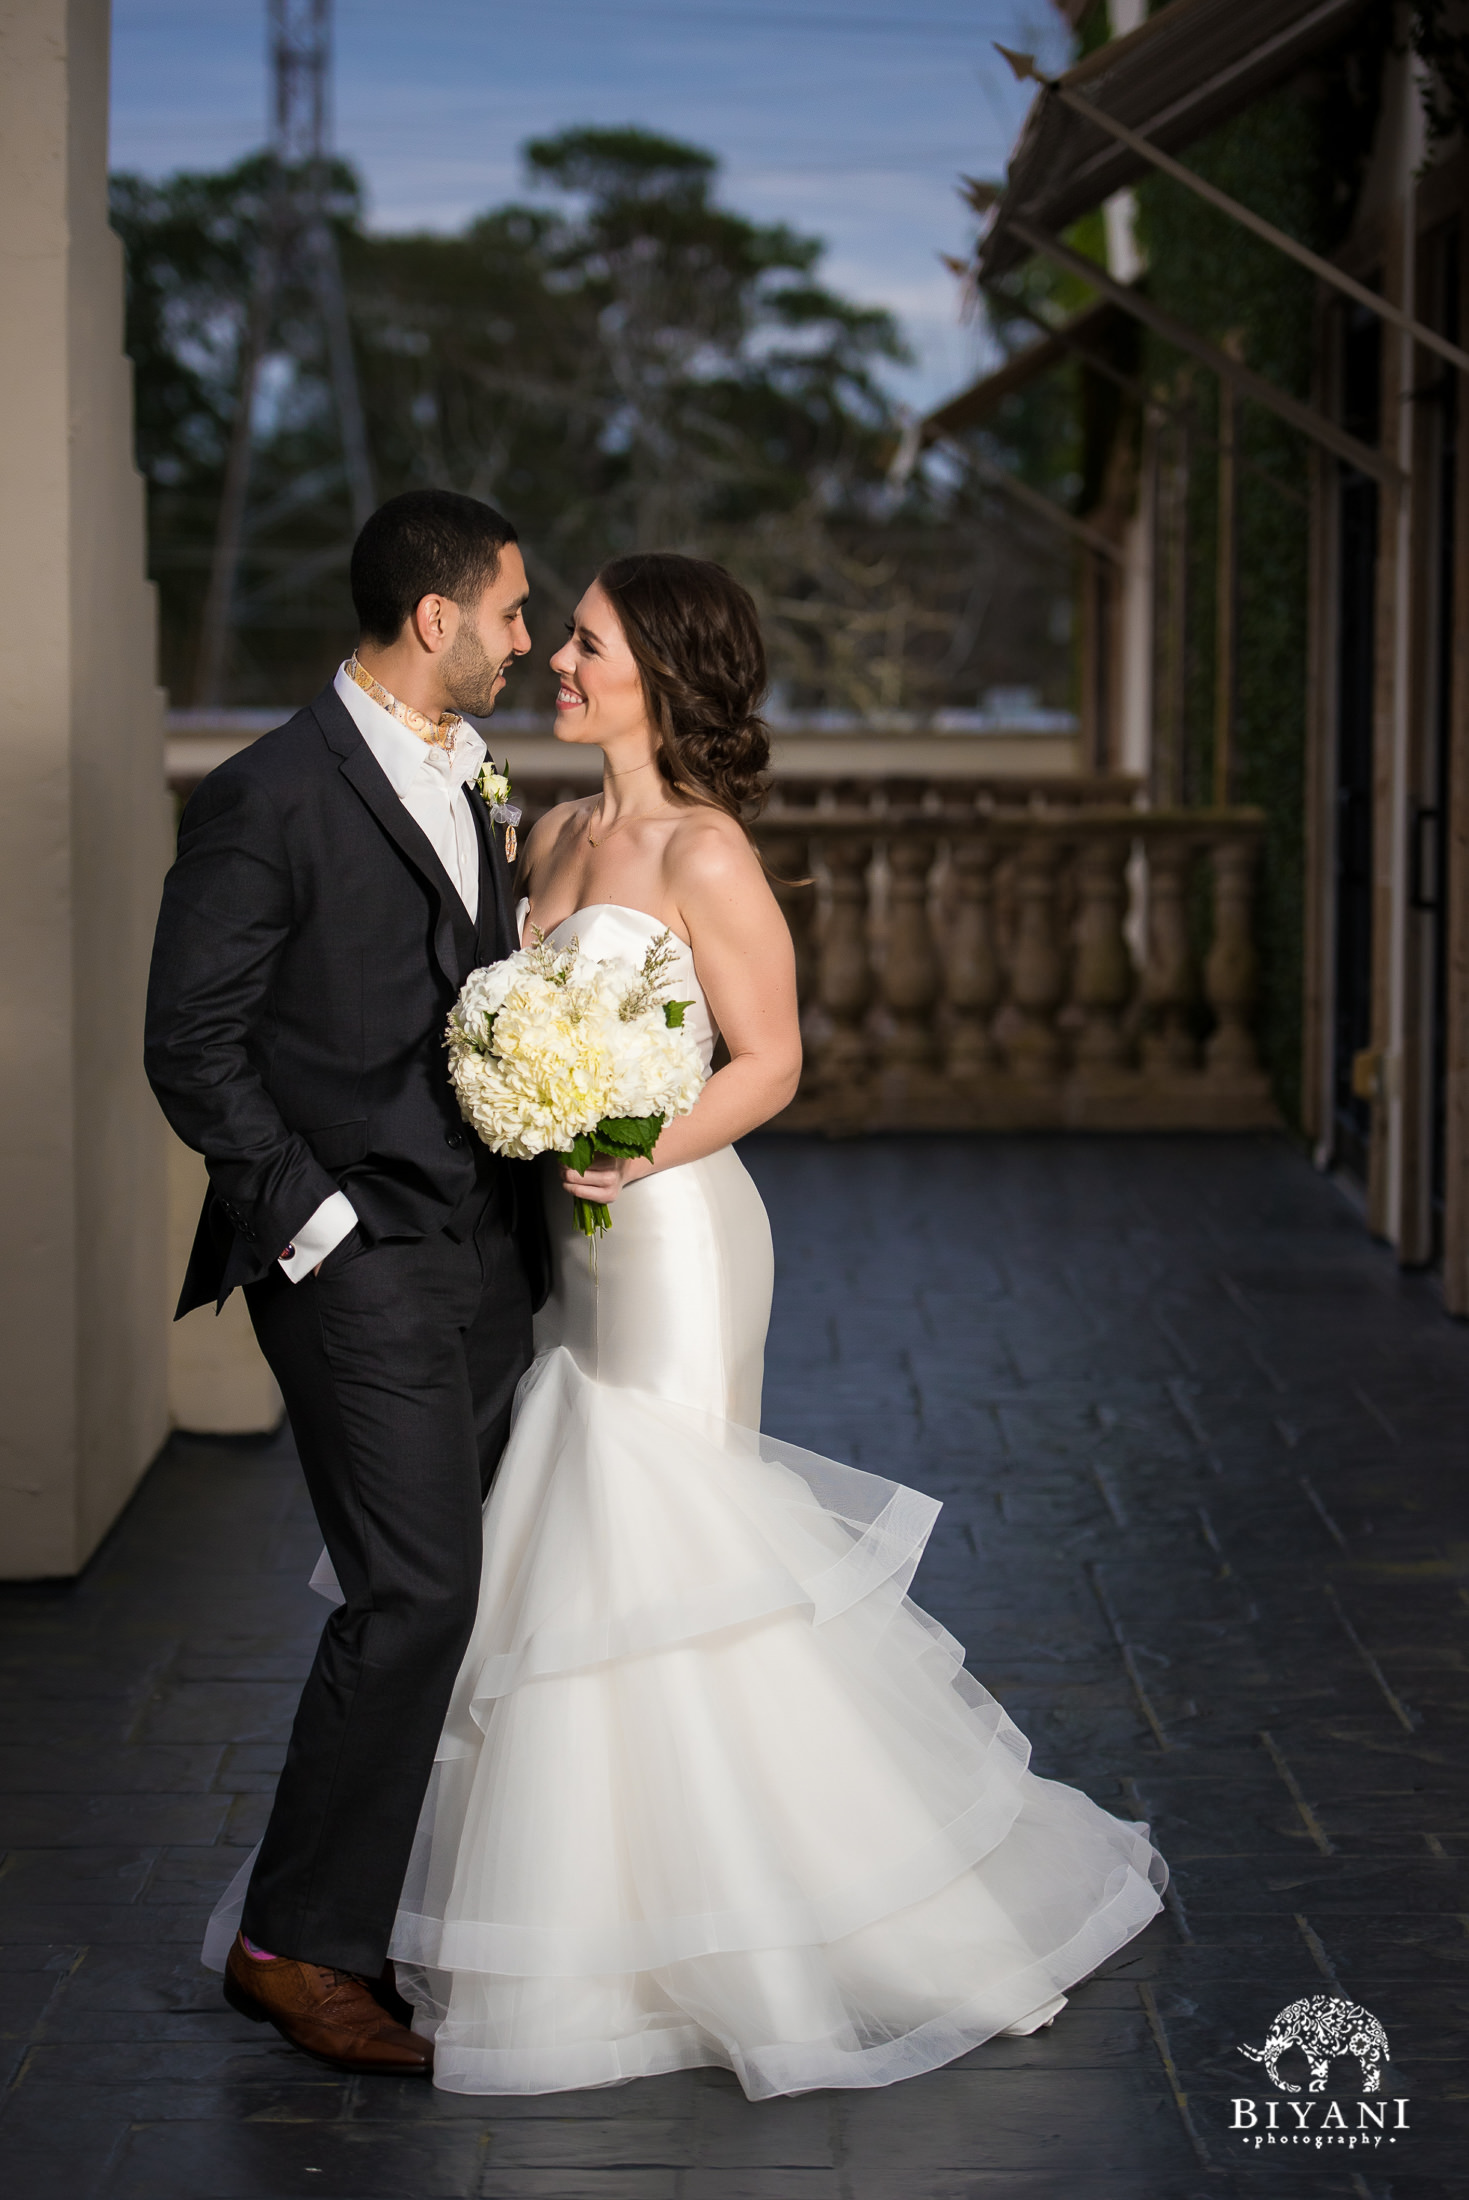 Houston Fusion Egyptian Wedding Portraits with Bride and Groom